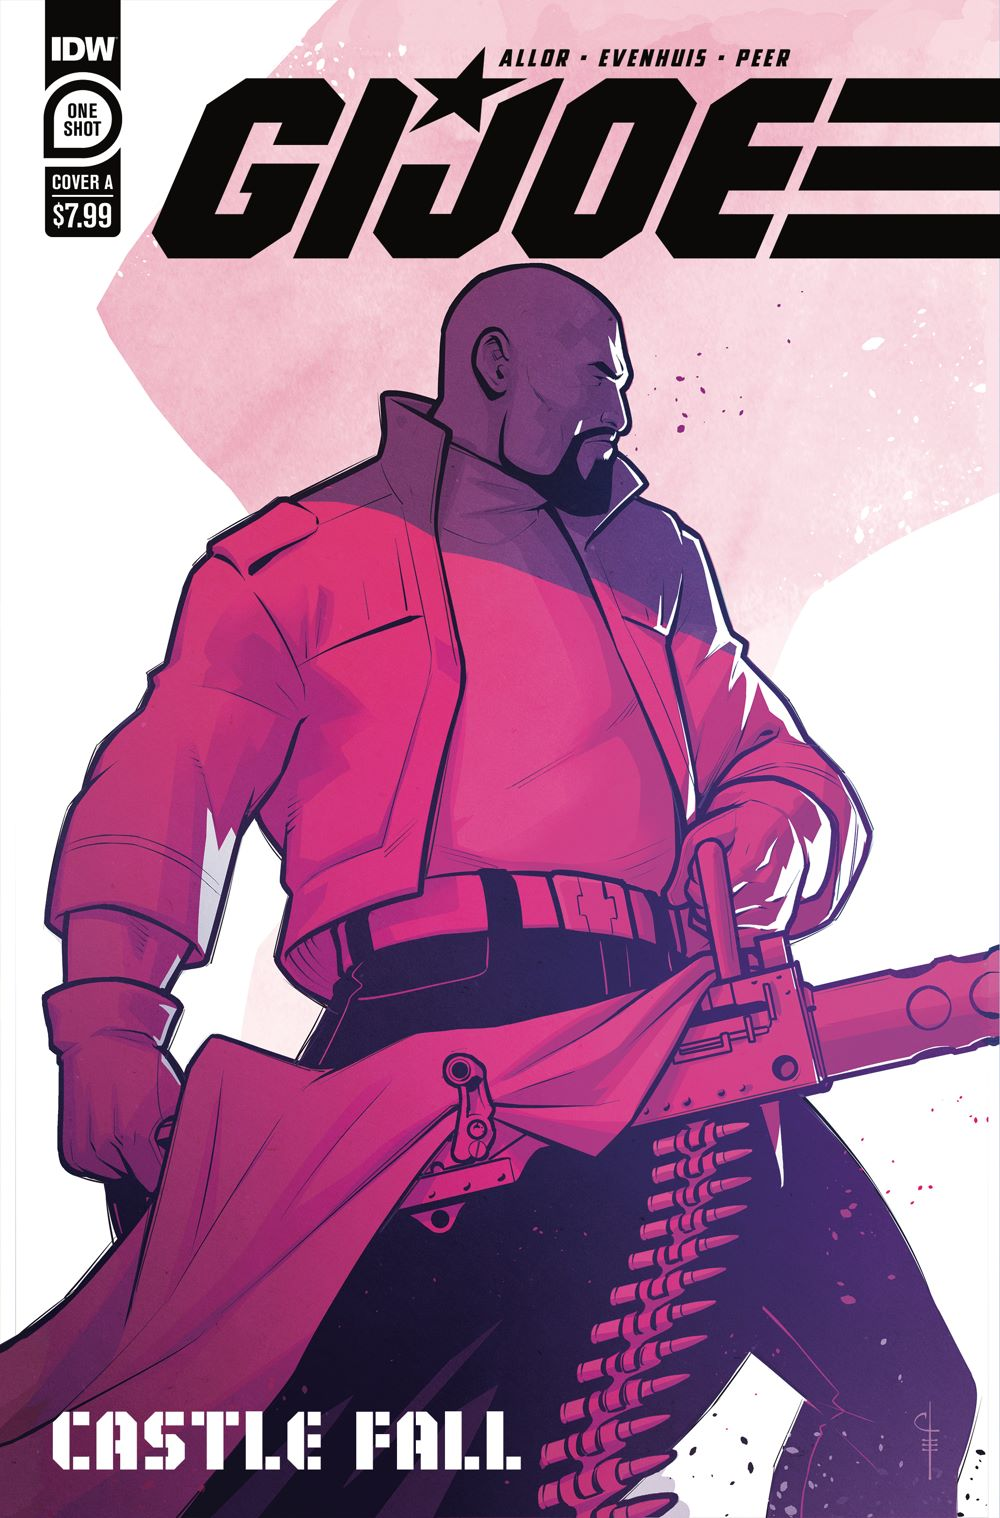 GIJoe_CastleFall01-coverA ComicList: IDW Publishing New Releases for 03/17/2021